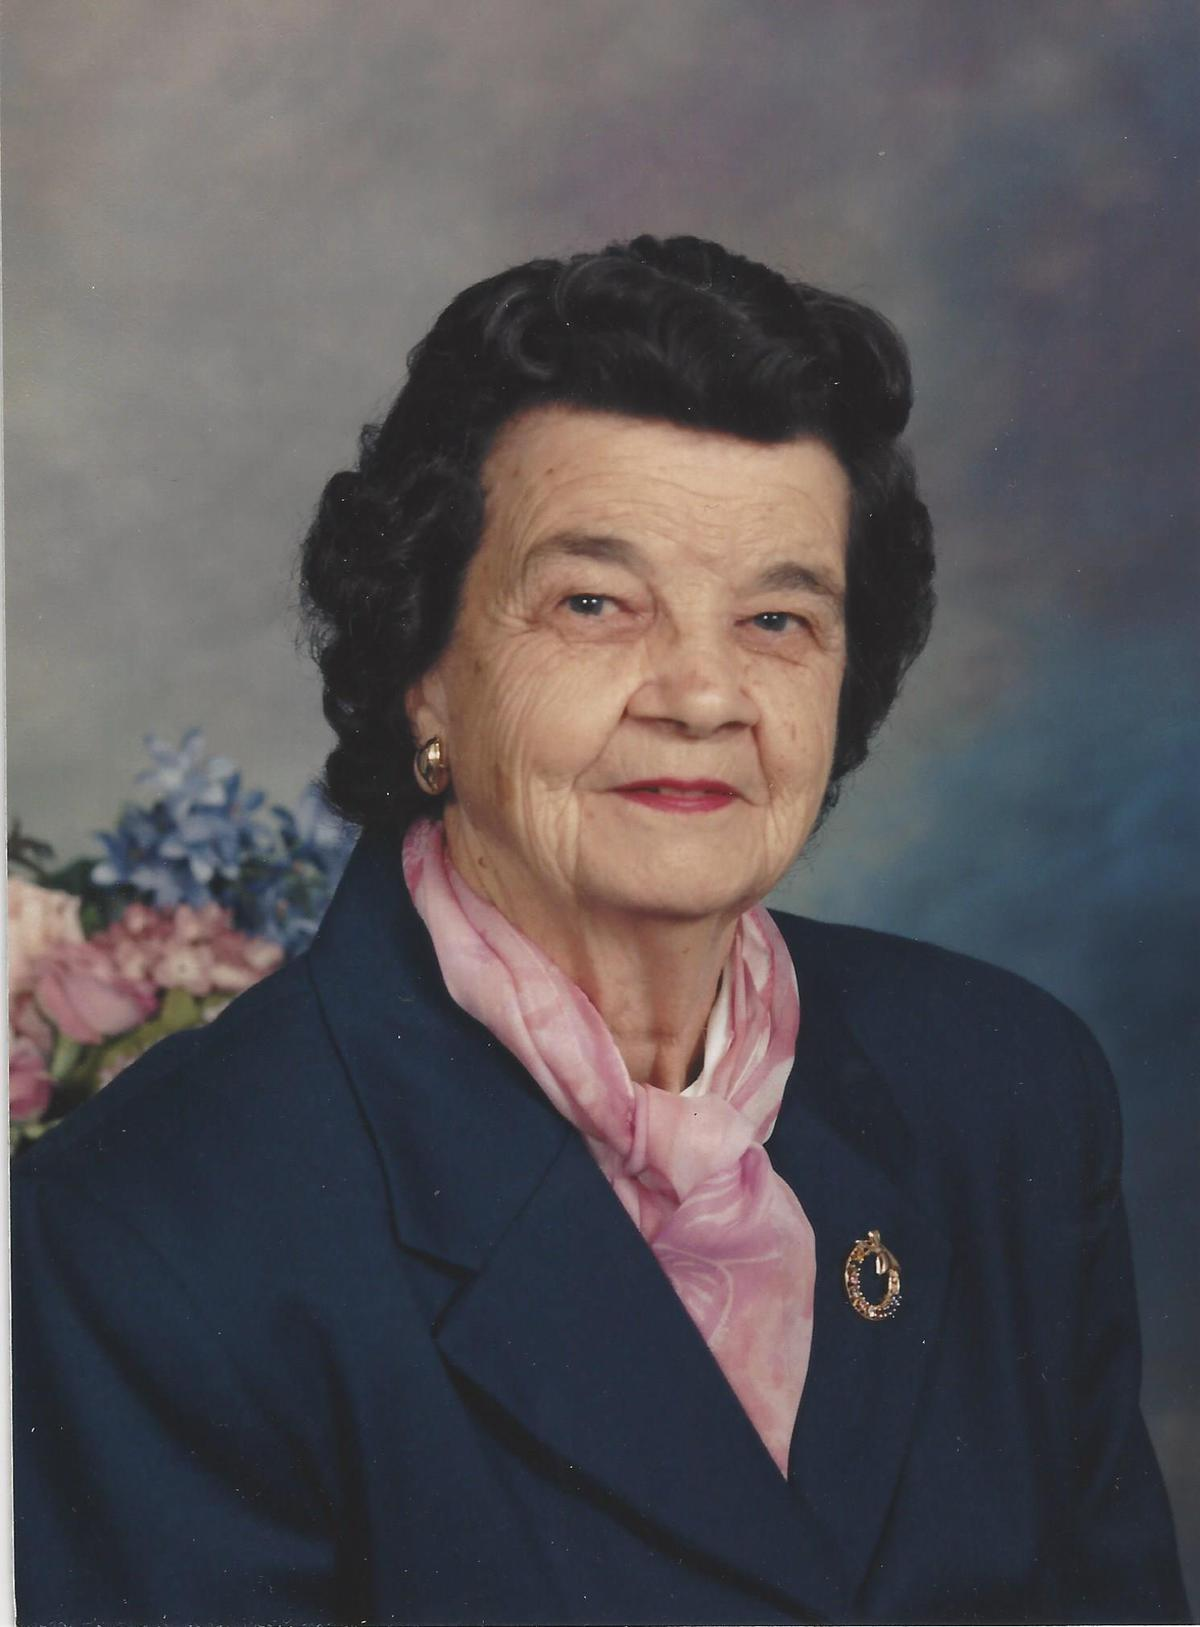 Virginia Hite Gee